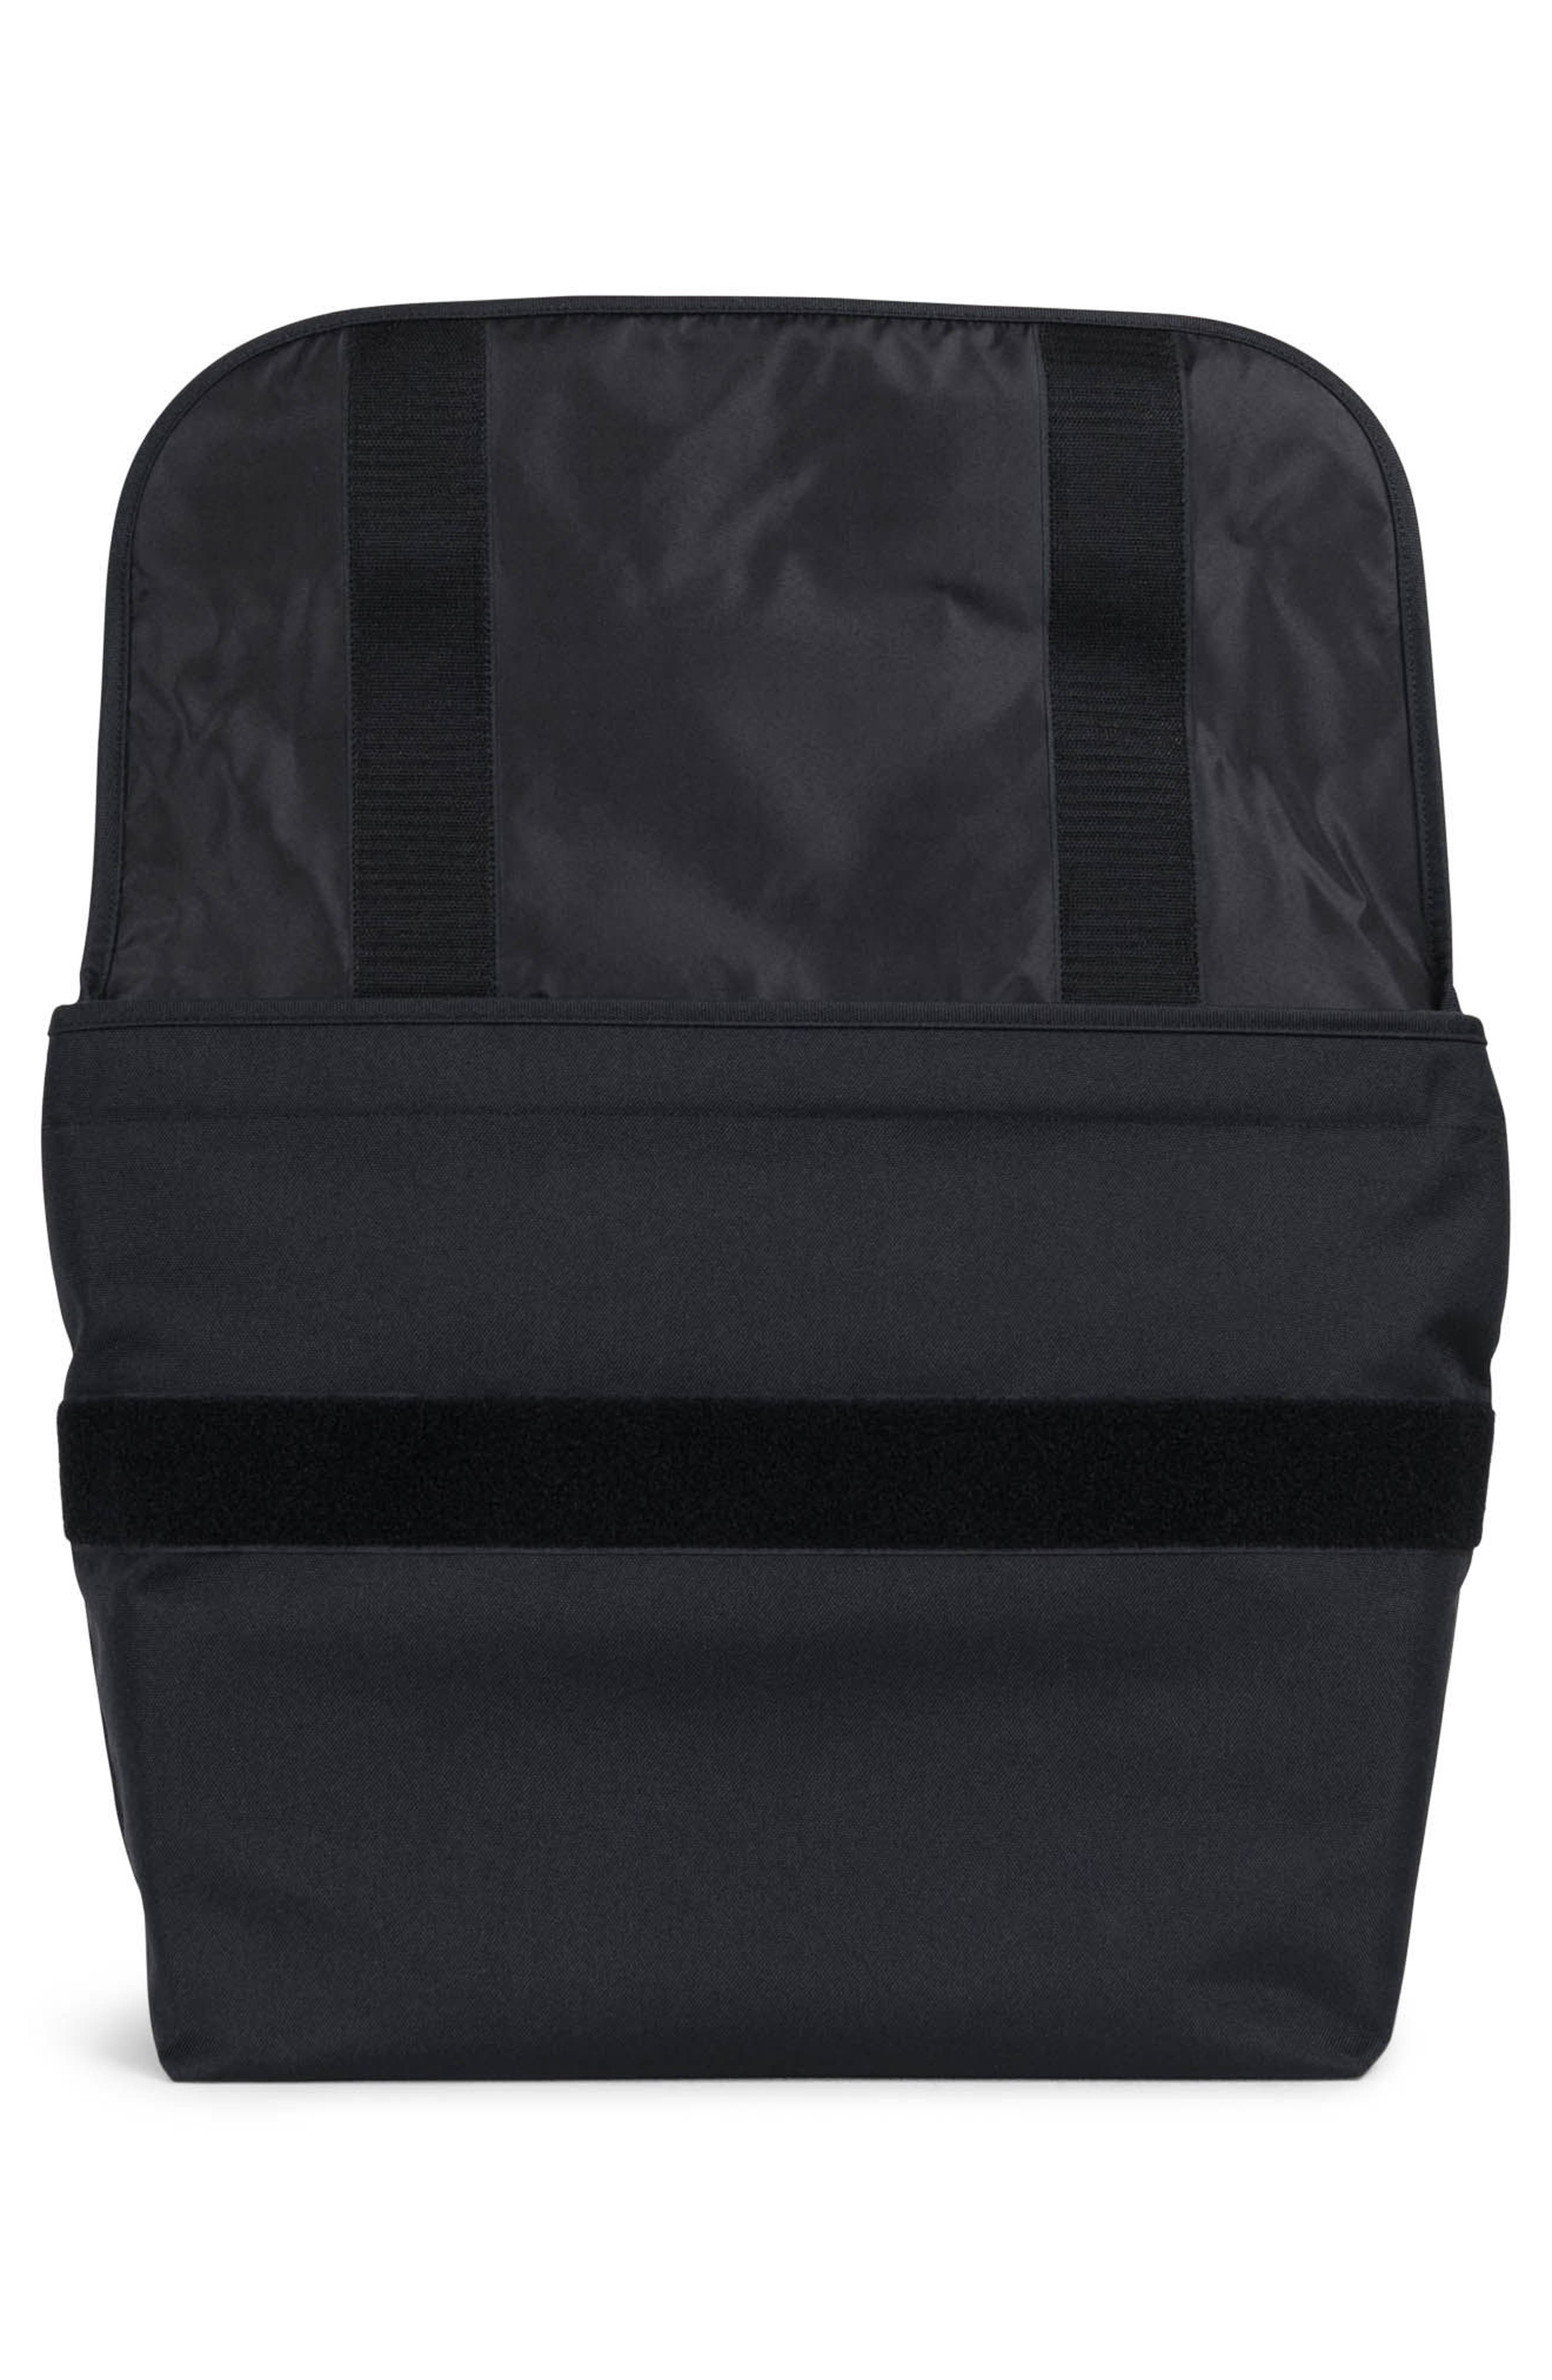 Odell Messenger Bag,                             Alternate thumbnail 3, color,                             Black